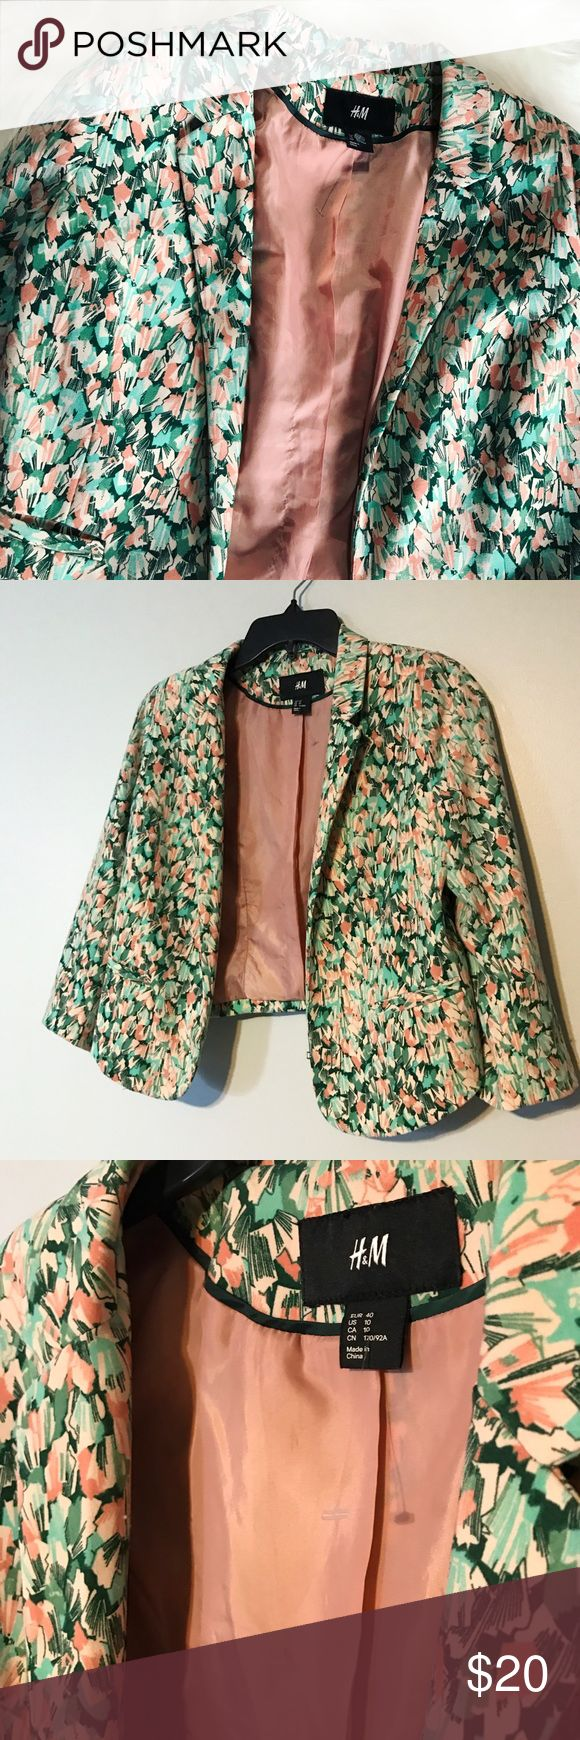 """H&M Cropped Spring Blazer 🌸 This blazer is perfect for Spring! Love the pastel colors. Materials are listed in tag. 17"""" chest x 19"""" length. H&M Jackets & Coats Blazers"""